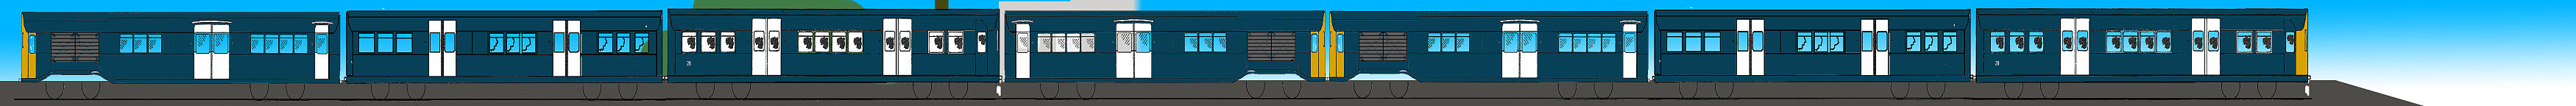 Rail Blue livery on Class 485